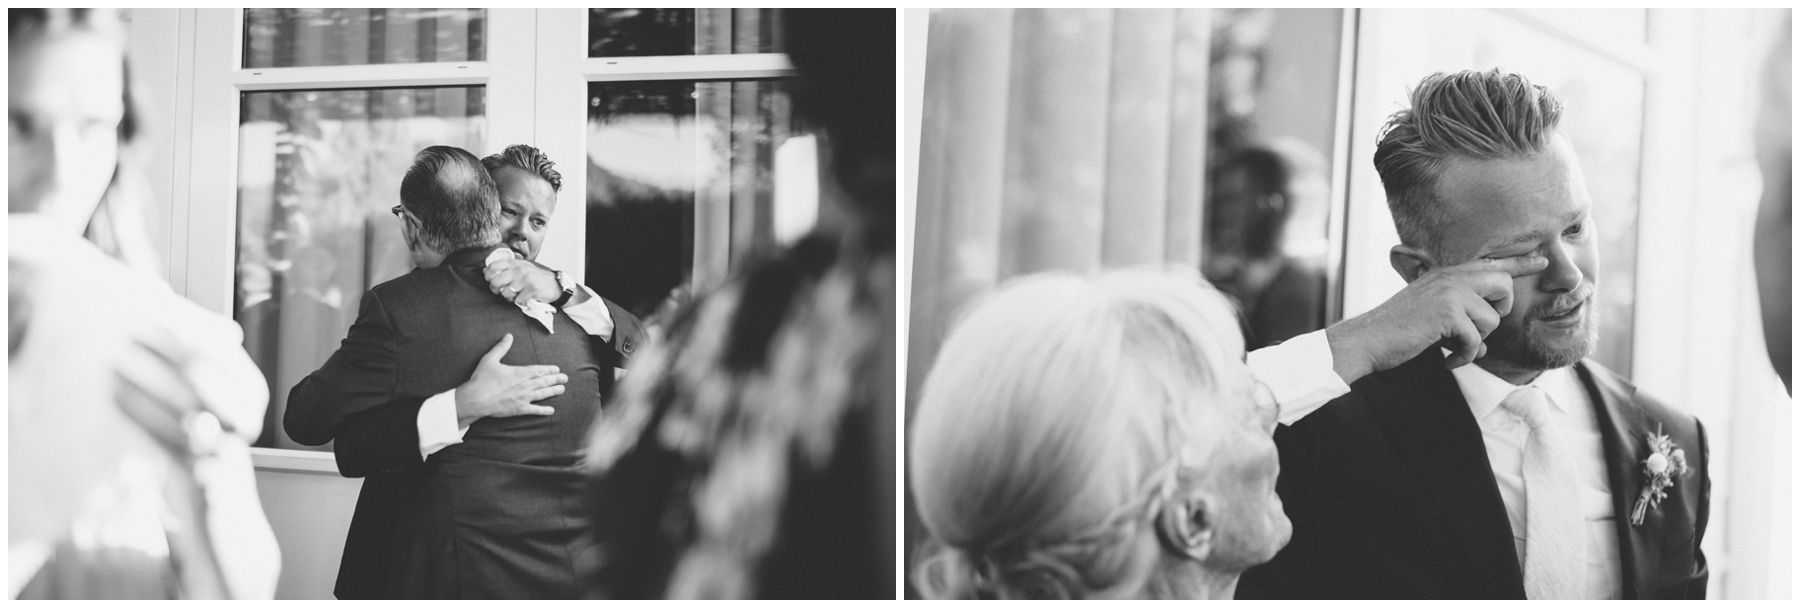 Megan+James-KELLYBOITANO-Solage_Wedding_0047